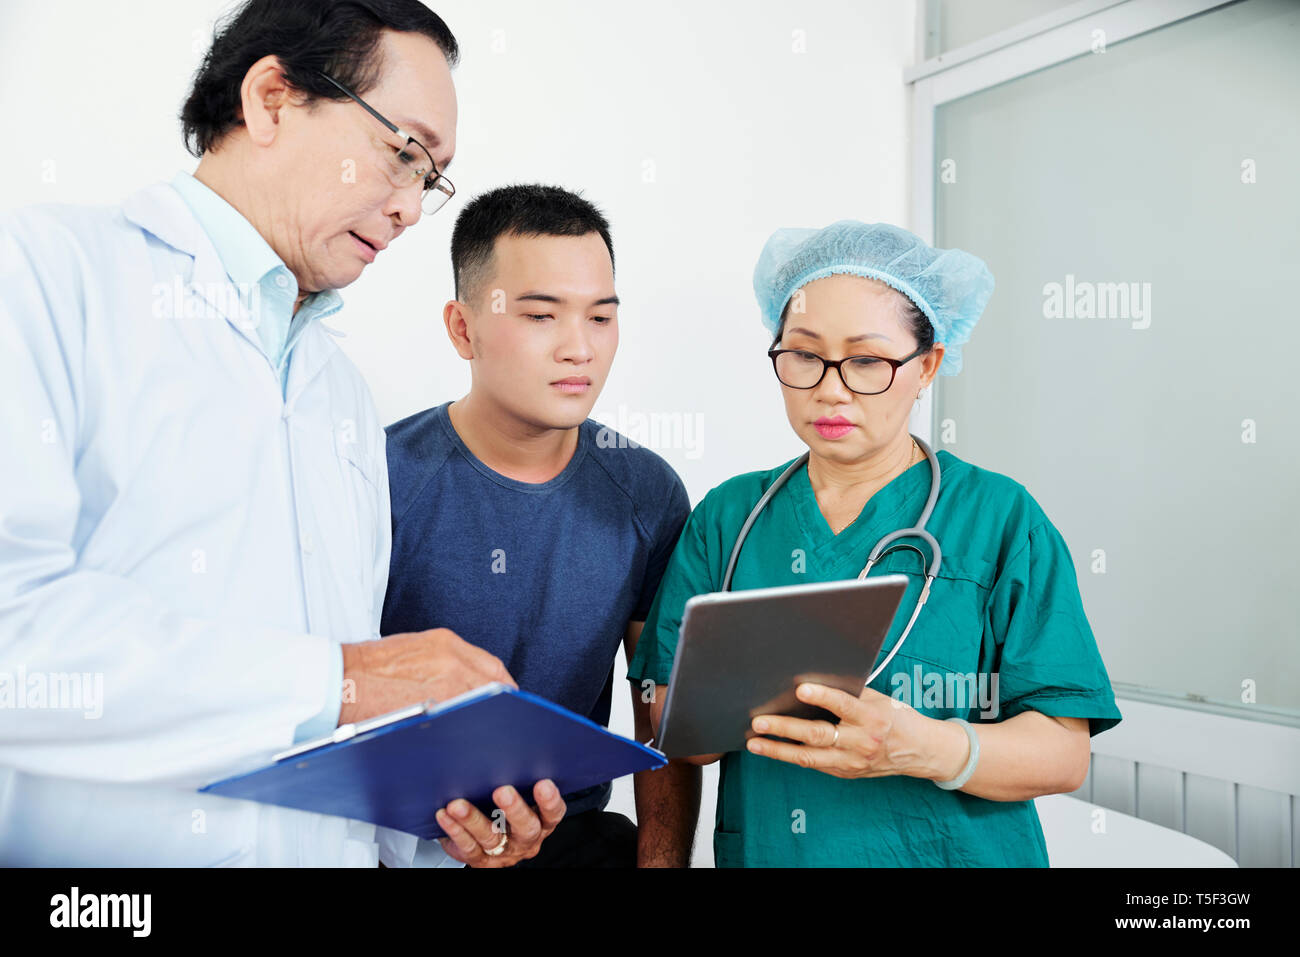 Doctor and surgeon talking to patient - Stock Image